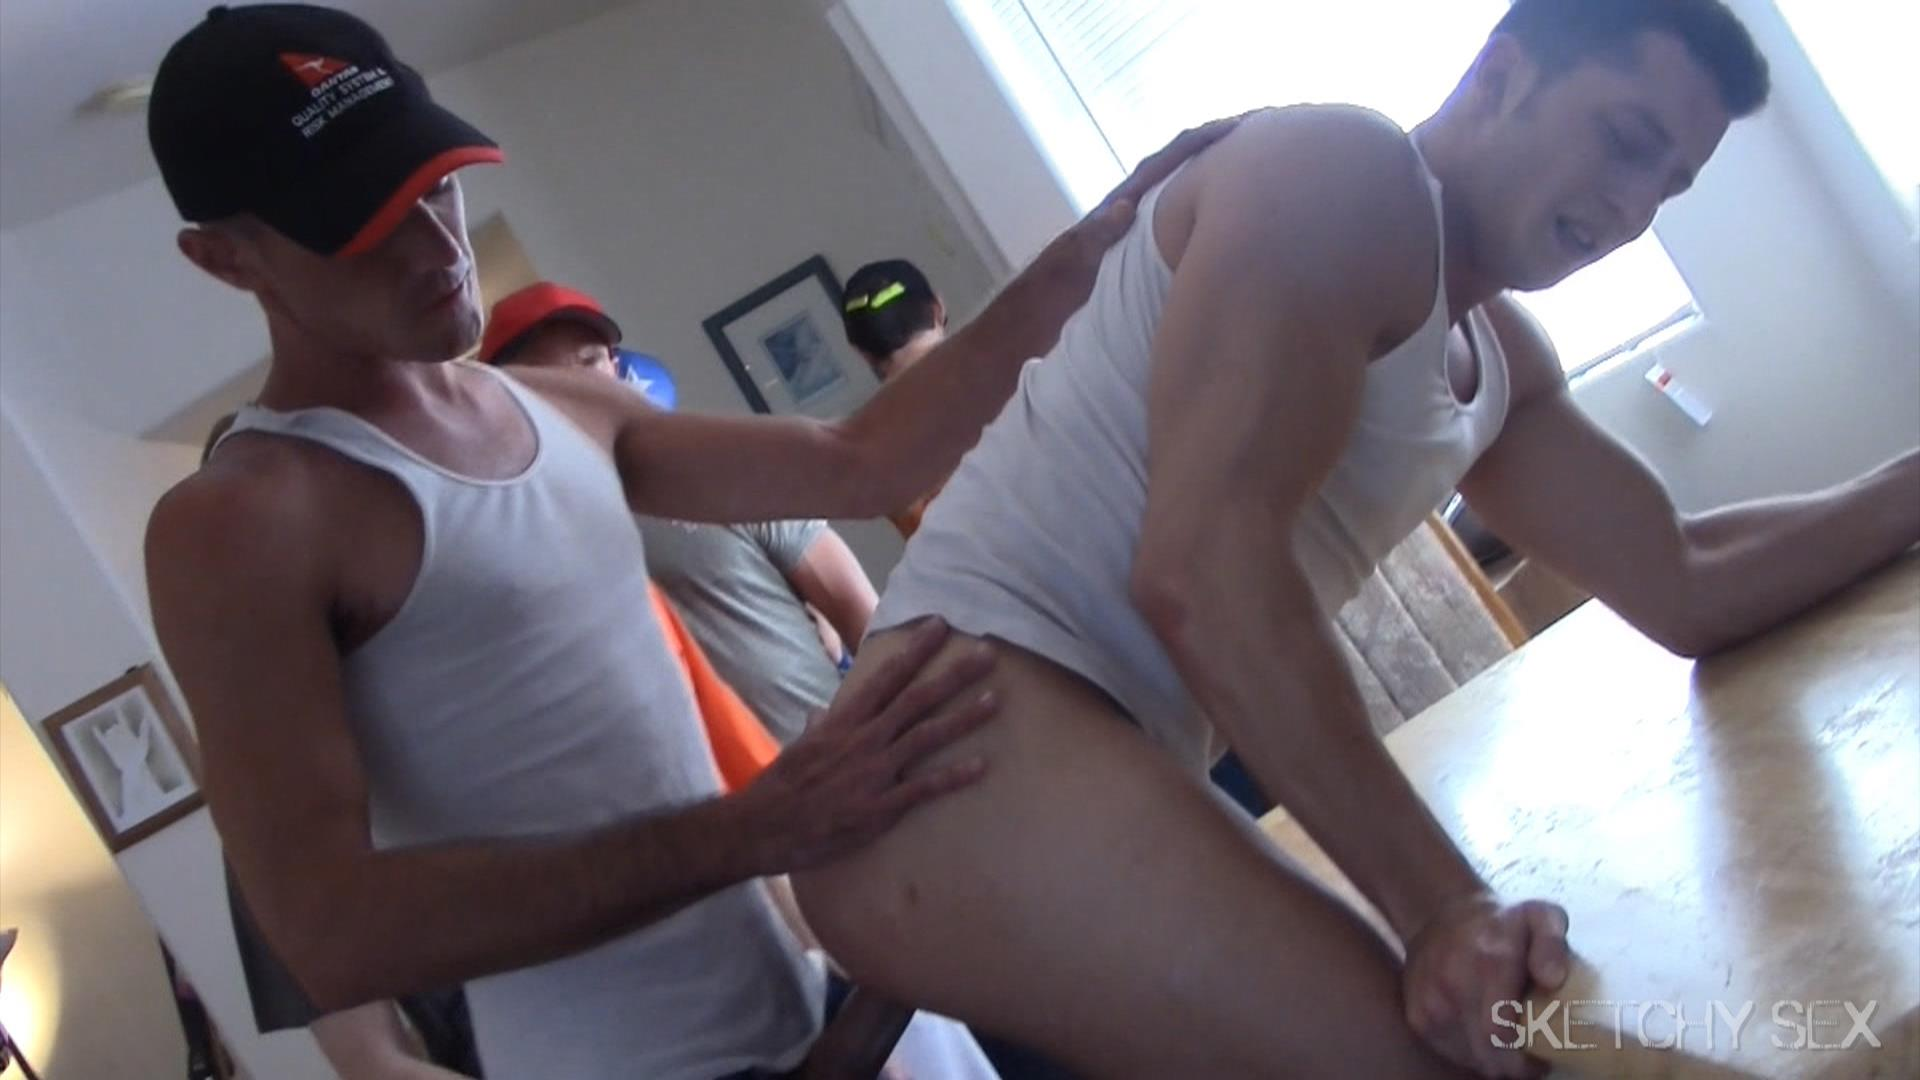 Sketchy Sex Bareback Breeding A College Guy Amateur Gay Porn 12 Guys Lining Up At The Door Take Turns Breeding A Horny College Guy